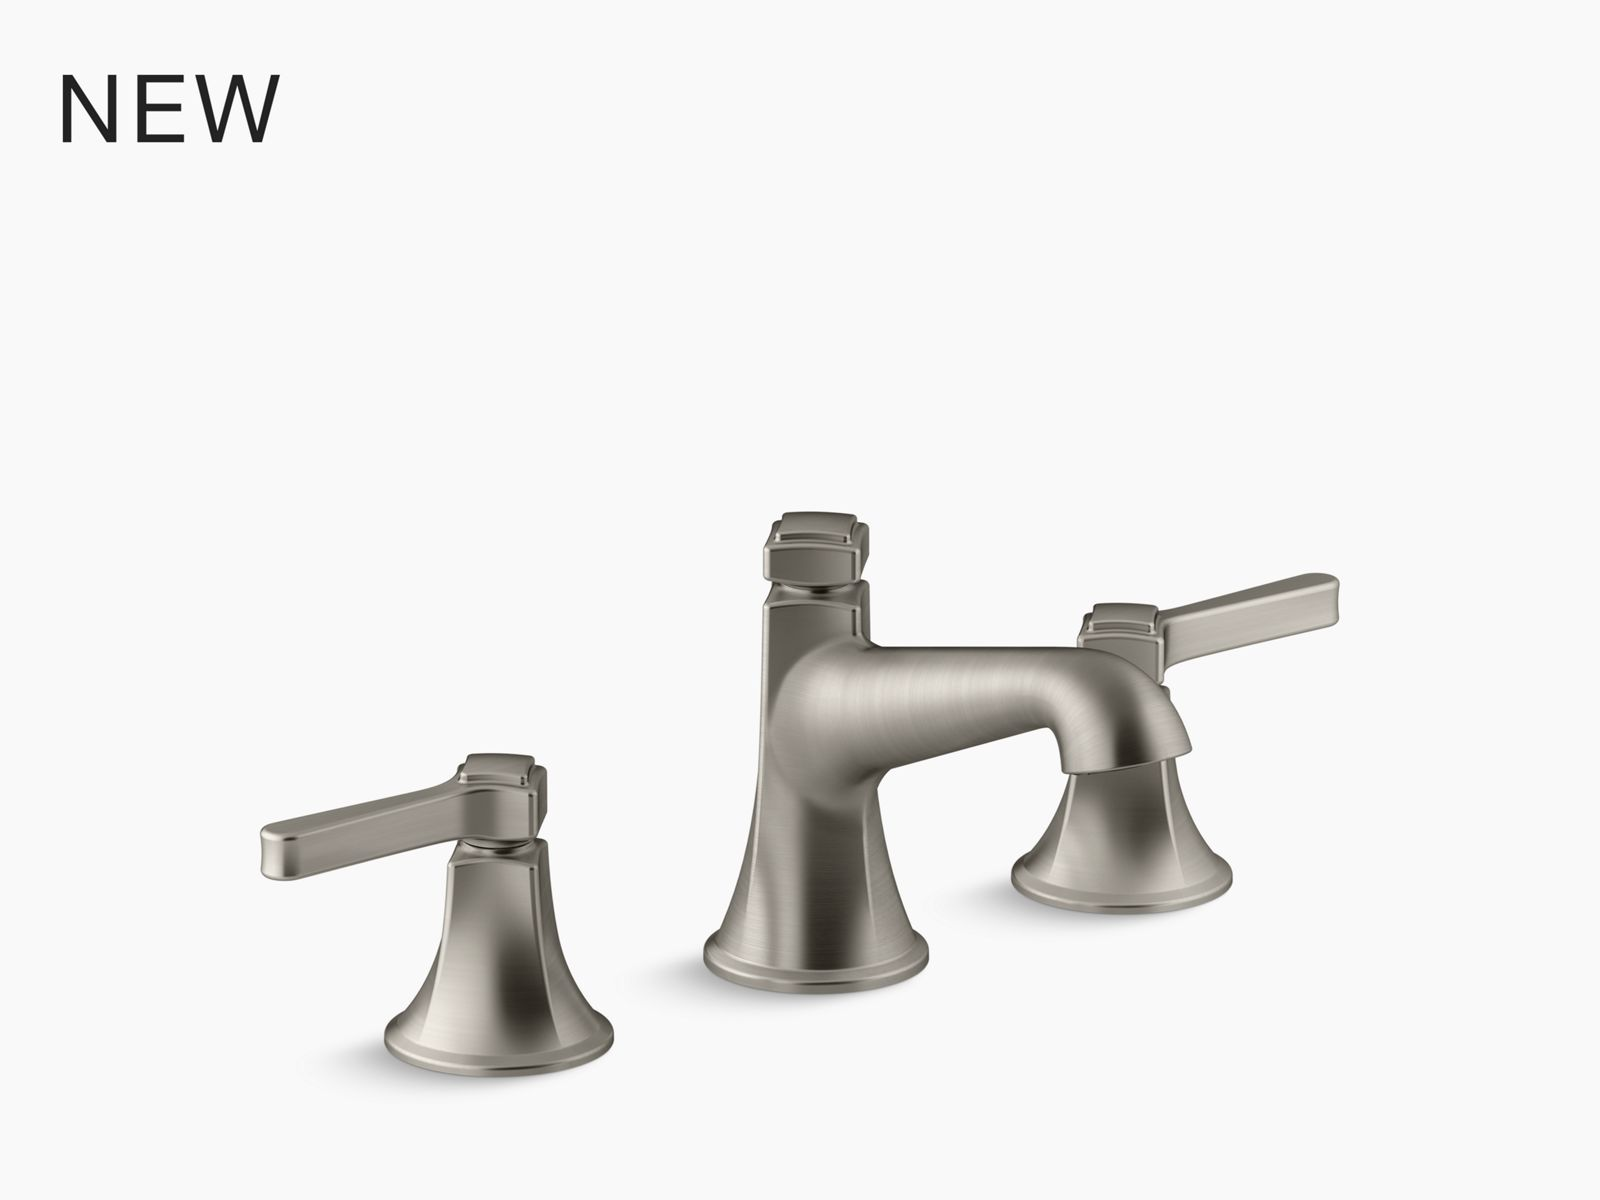 artifacts single hole kitchen sink faucet with 17 5 8 pull down spout and turned lever handle docknetik magnetic docking system and 3 function